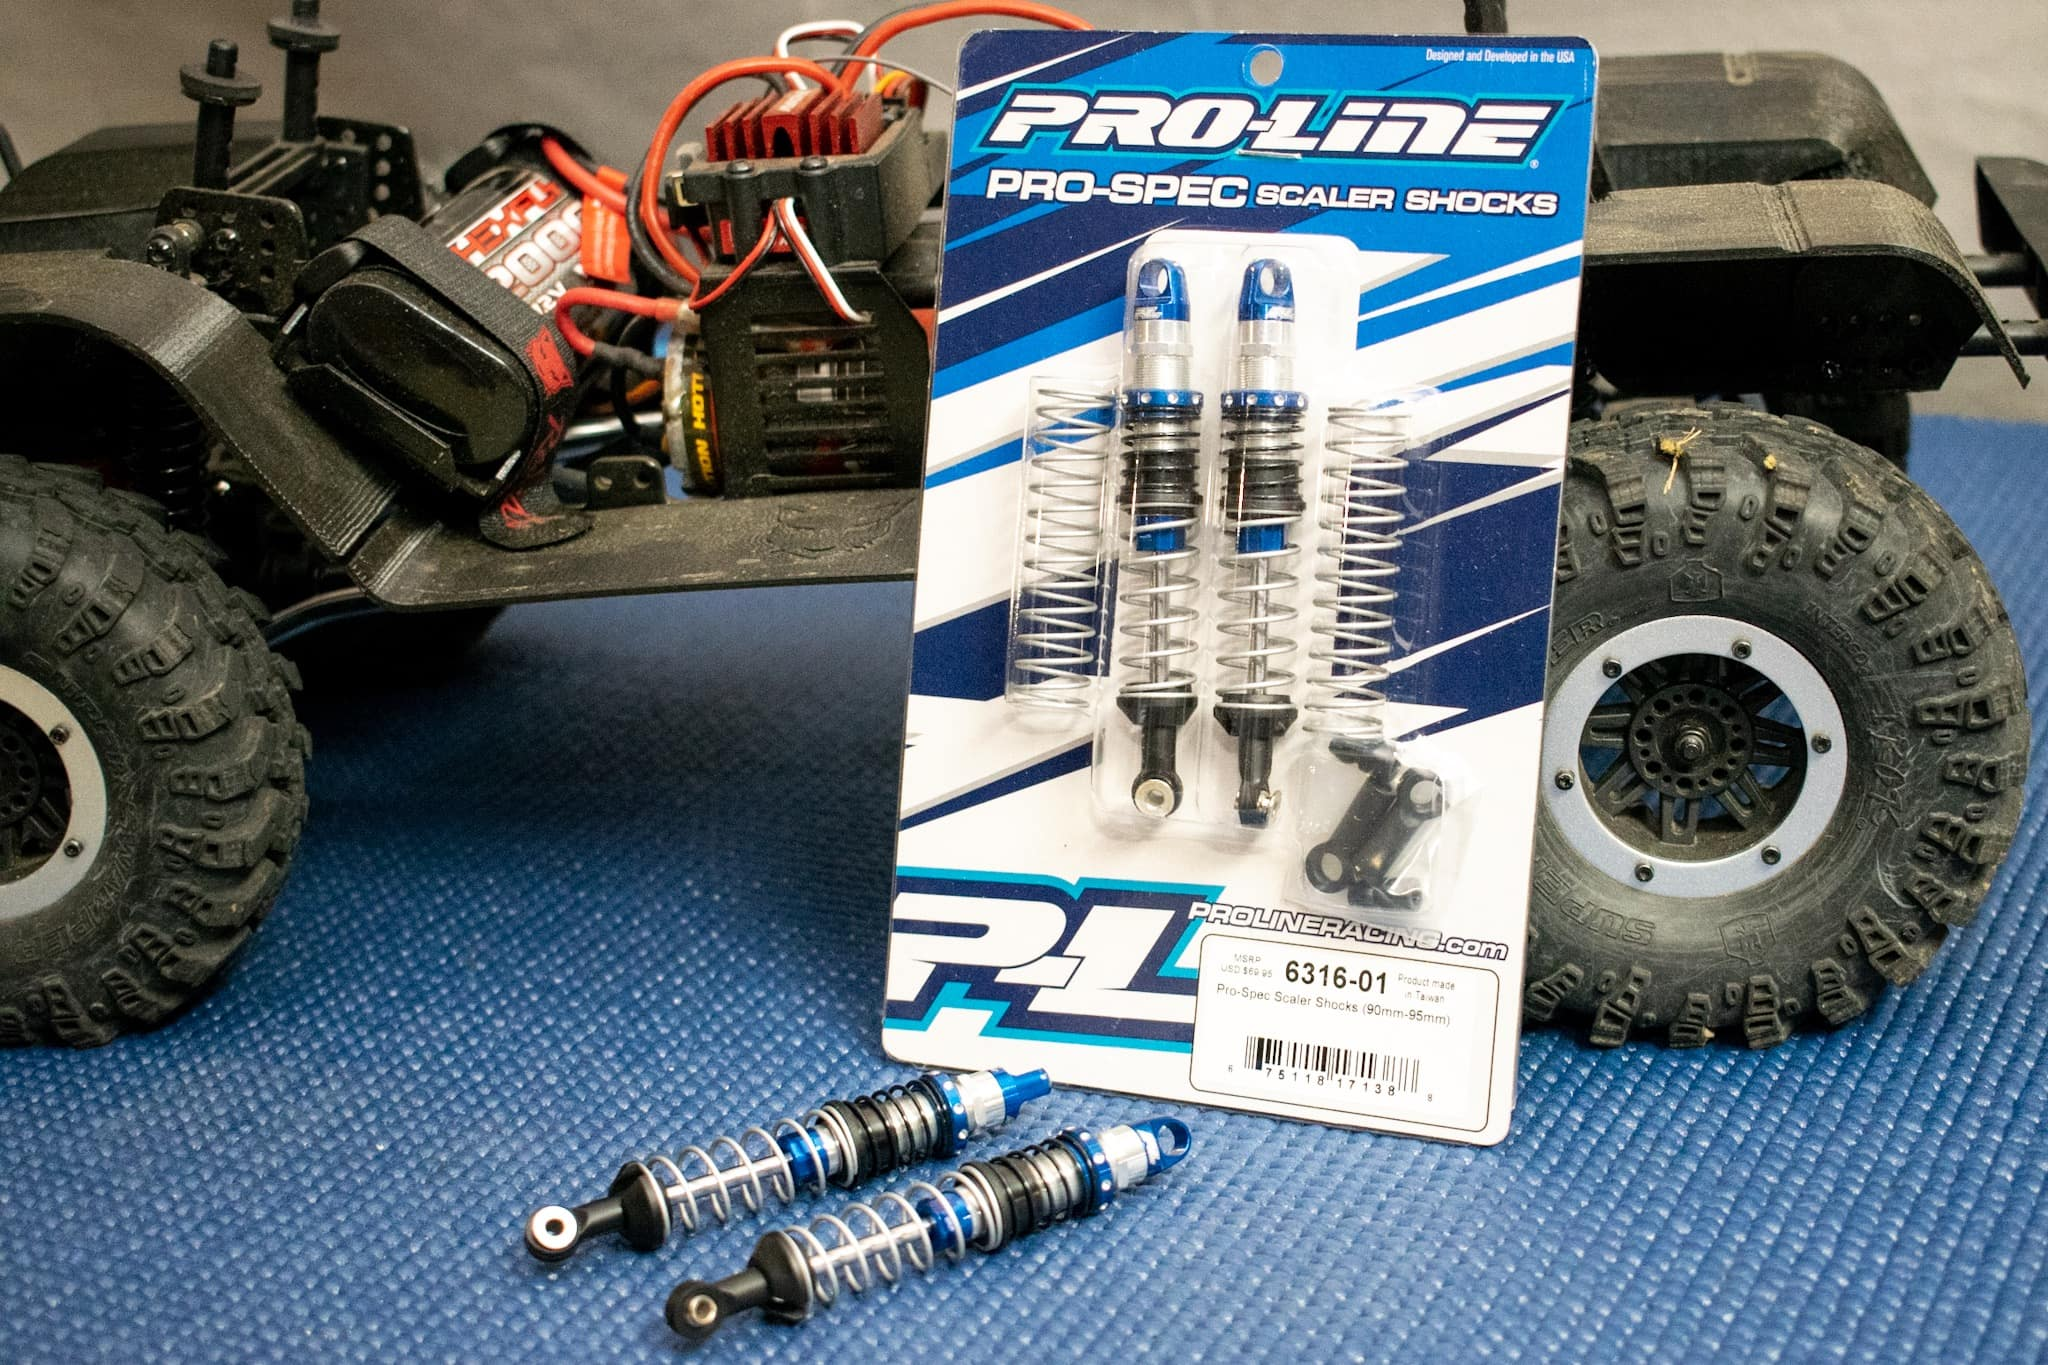 Hands-on with Pro-Line's Pro-Spec Scaler Shocks